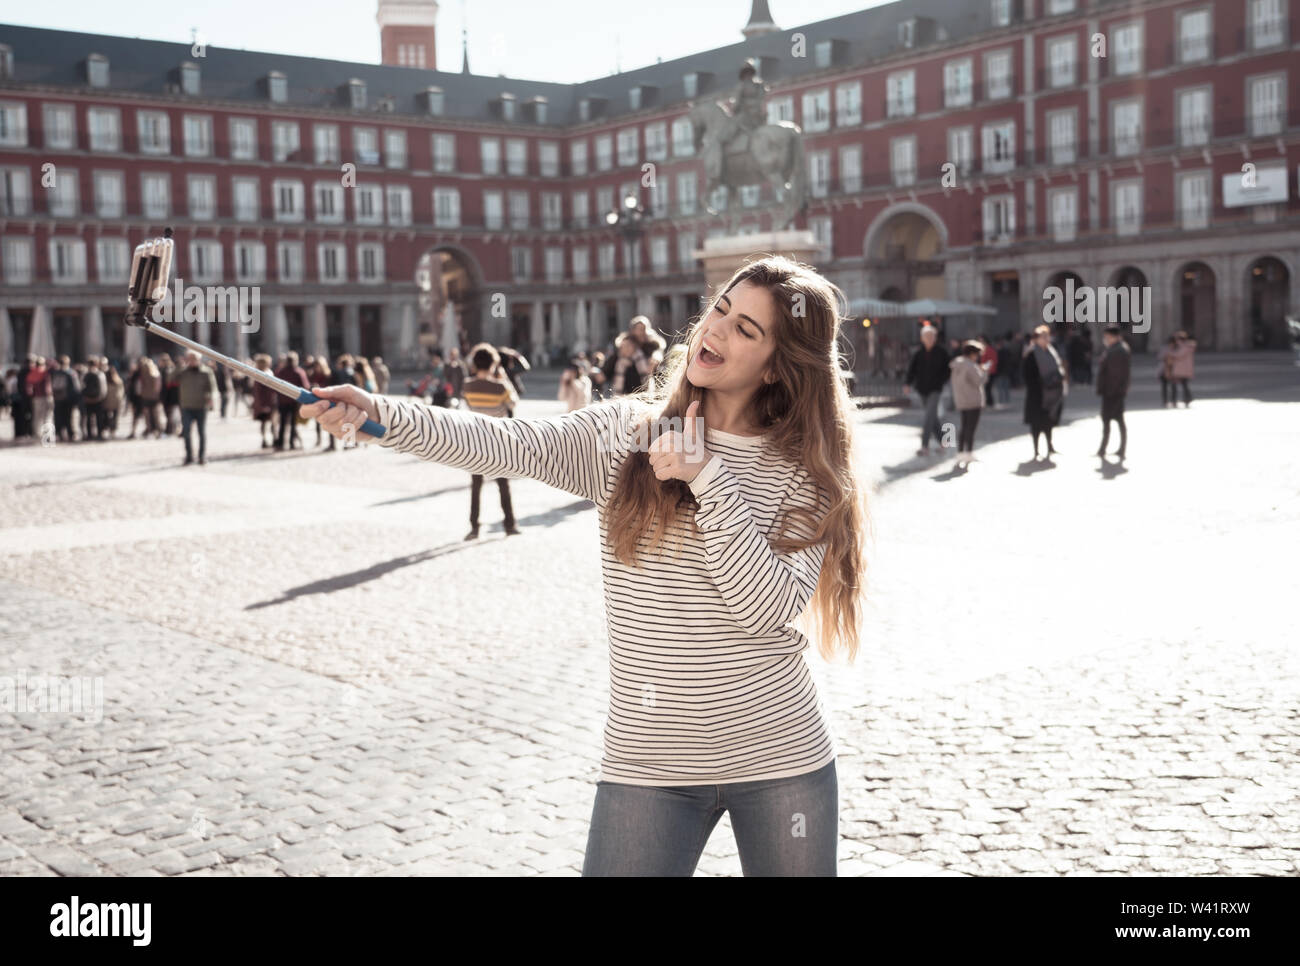 Beautiful and cheerful young woman happy and excited in Plaza Mayor Madrid taking selfie on smartphone making thumbs up gesture. In tourism student li - Stock Image